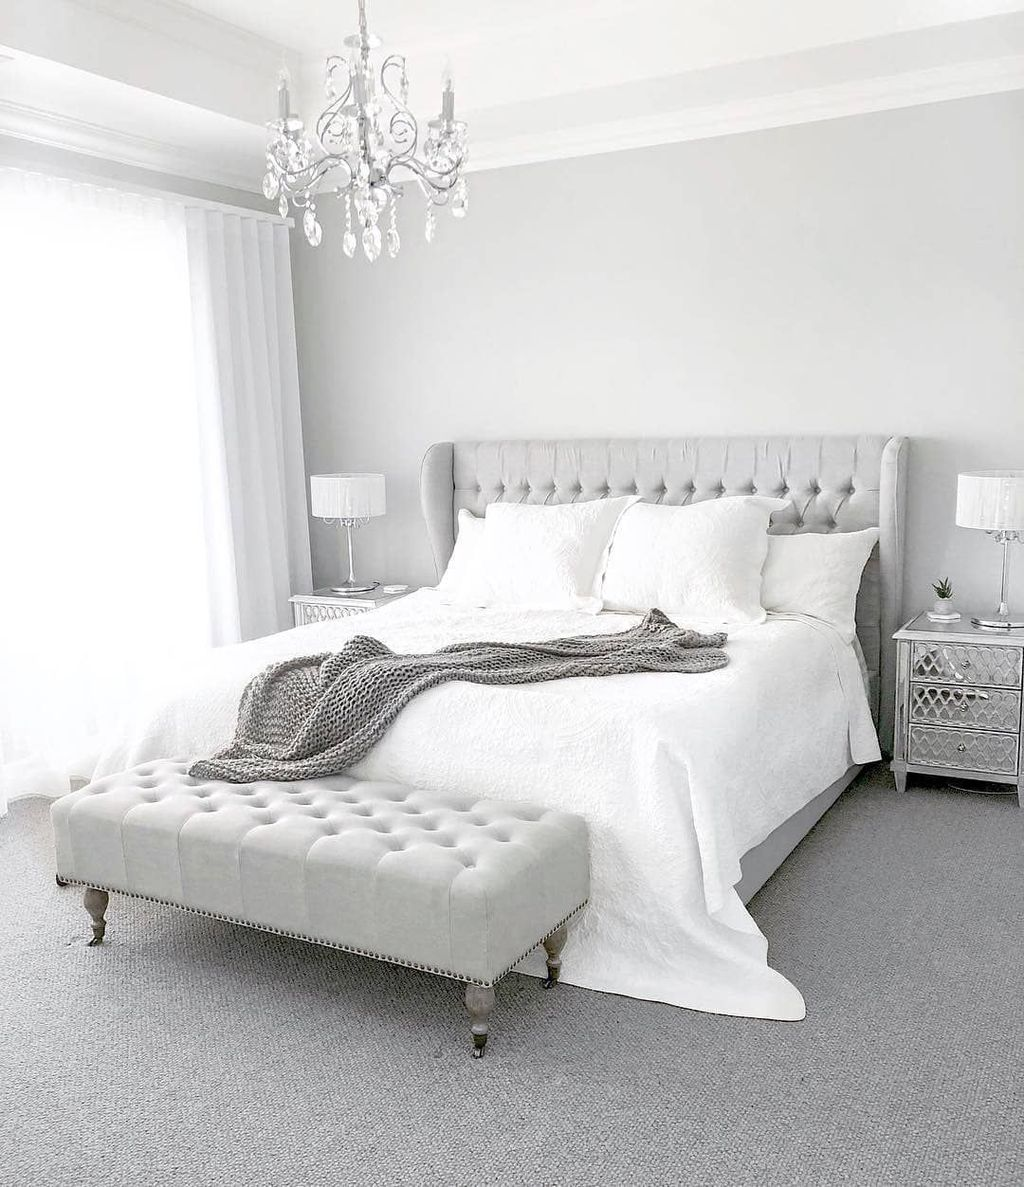 Fabulous White Bedroom Ideas To Make Your Sleep Comfortable 31